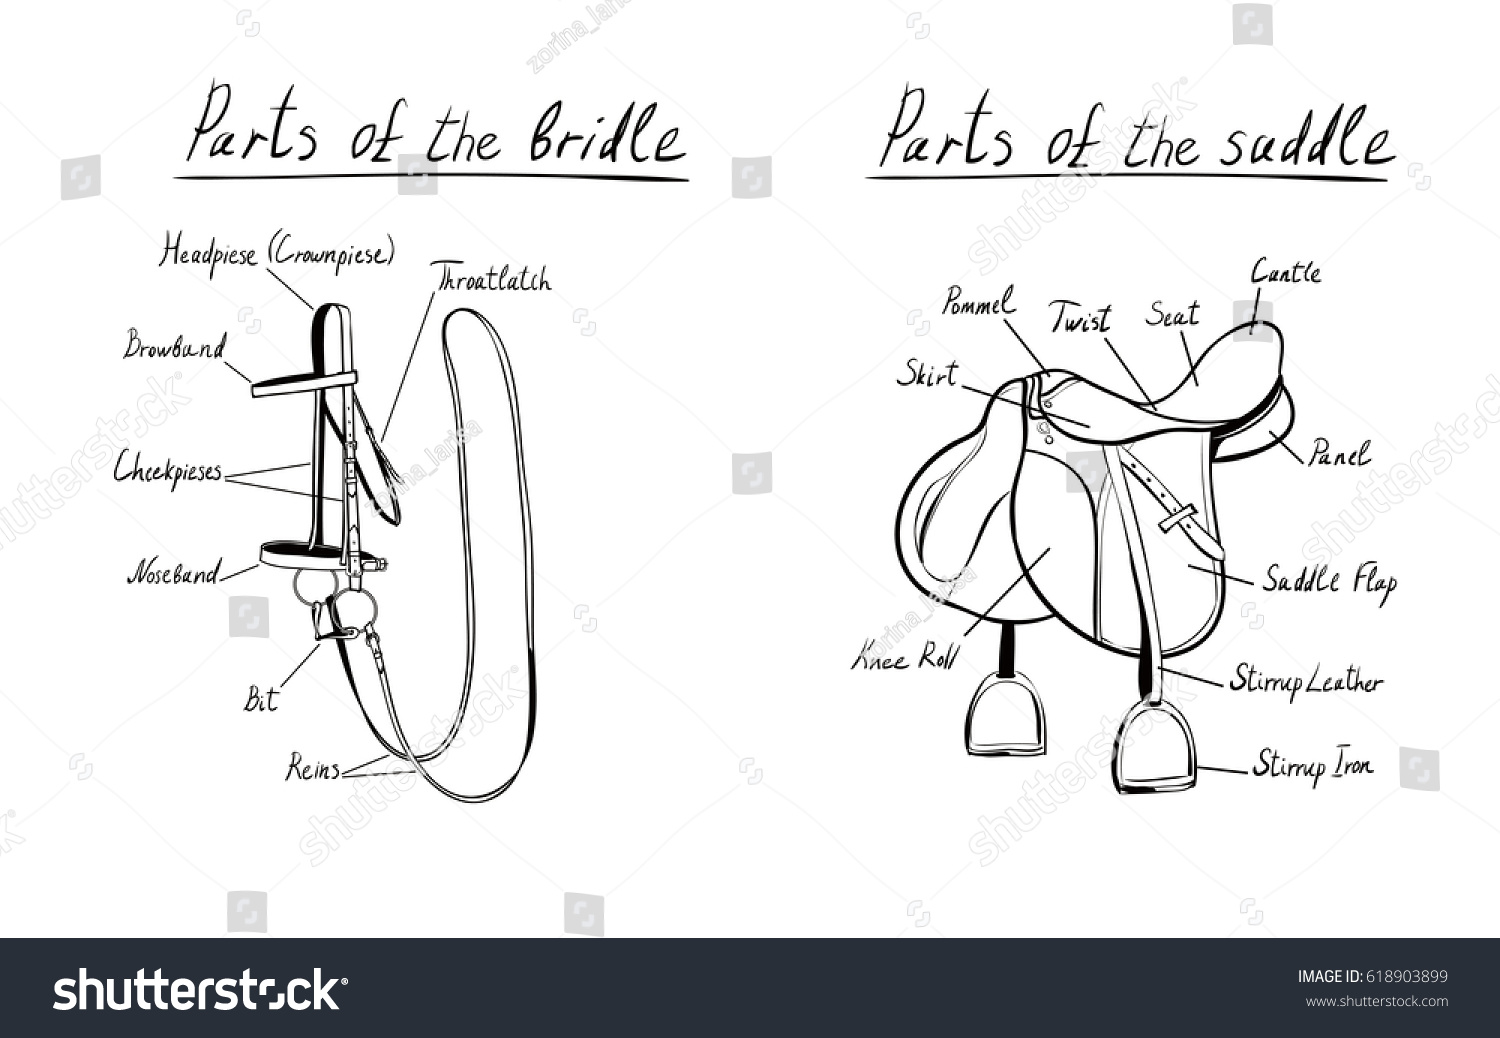 Parts Saddle Bridle Vector Terms Equestrian Stock Vector Royalty Free 618903899